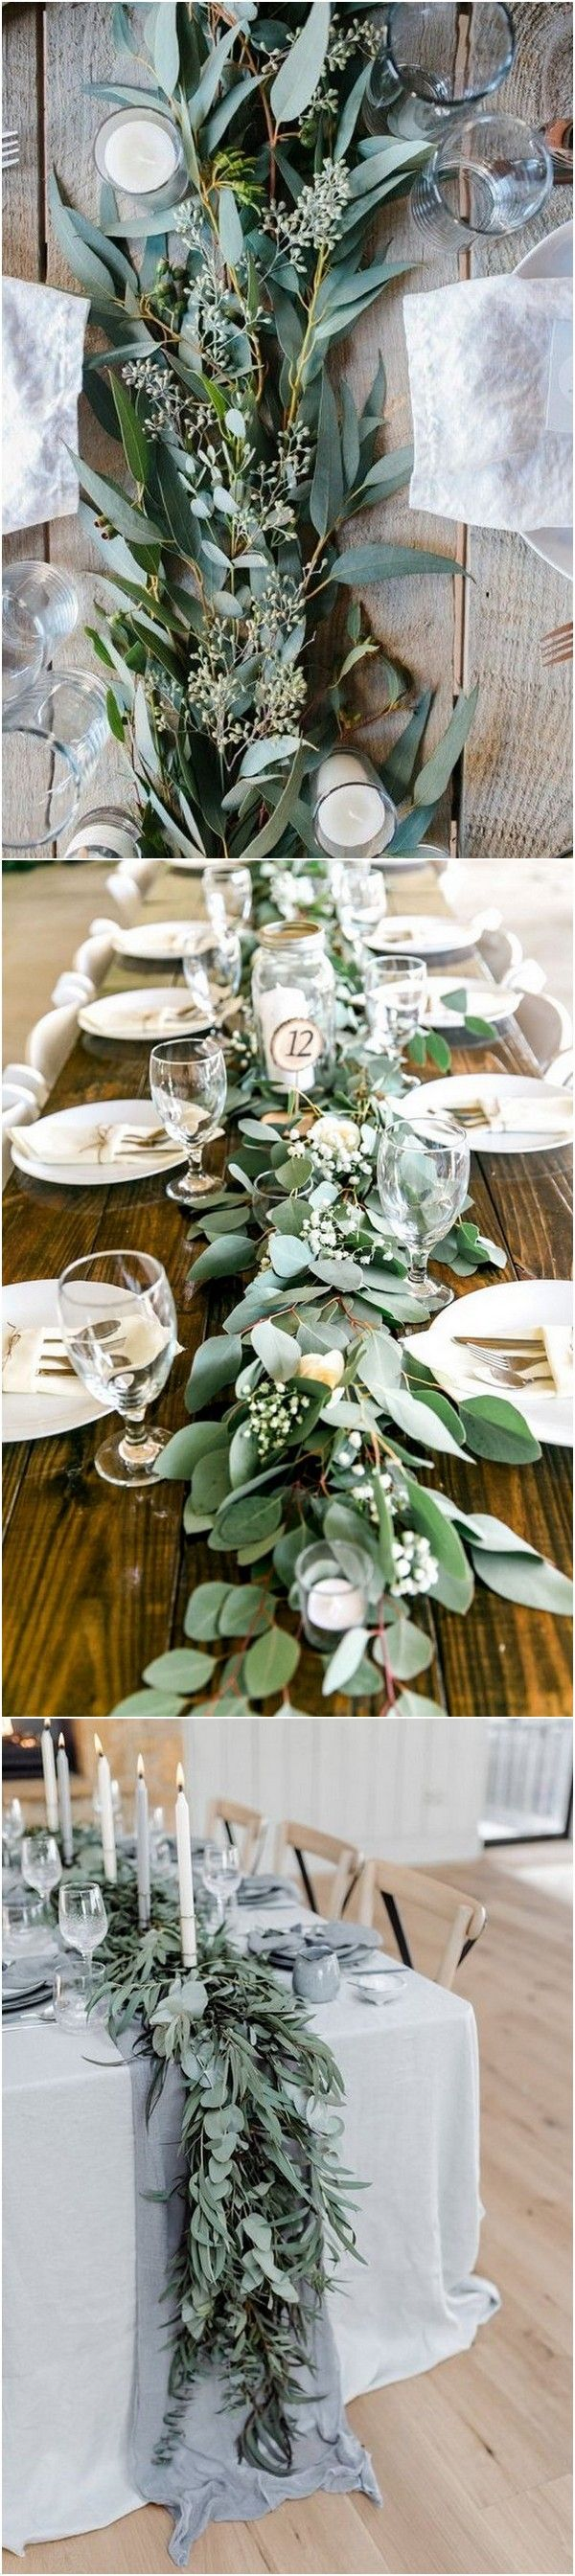 27 Amazing Table Runner Ideas for Your Wedding Reception – Page 2 of 2